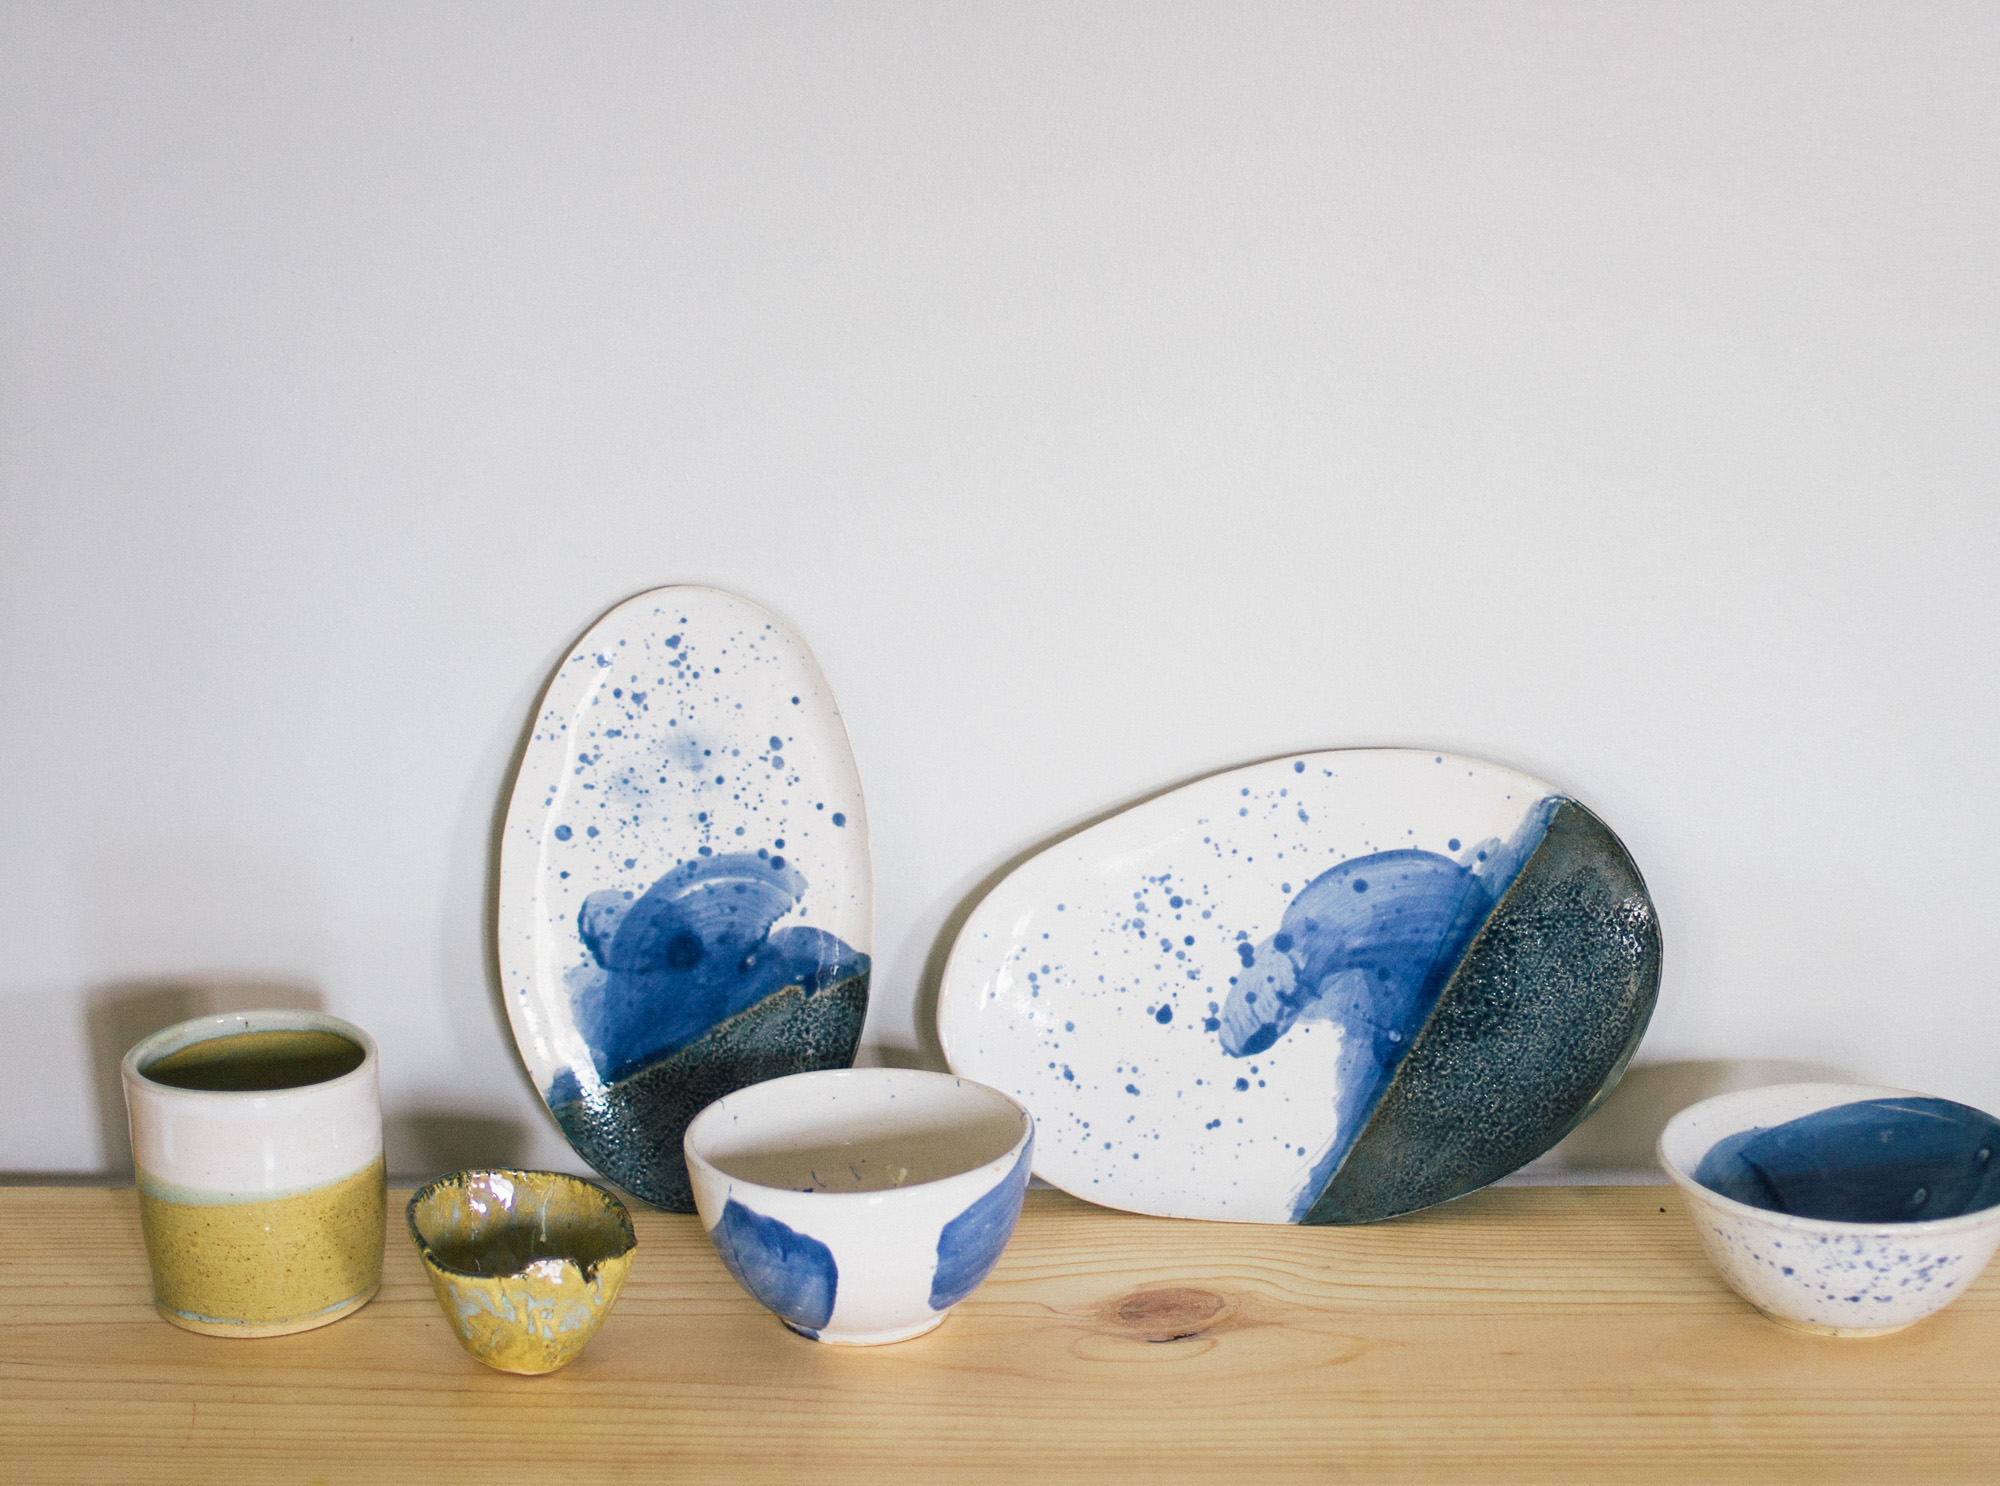 OLD BRAND NEW CERAMICS